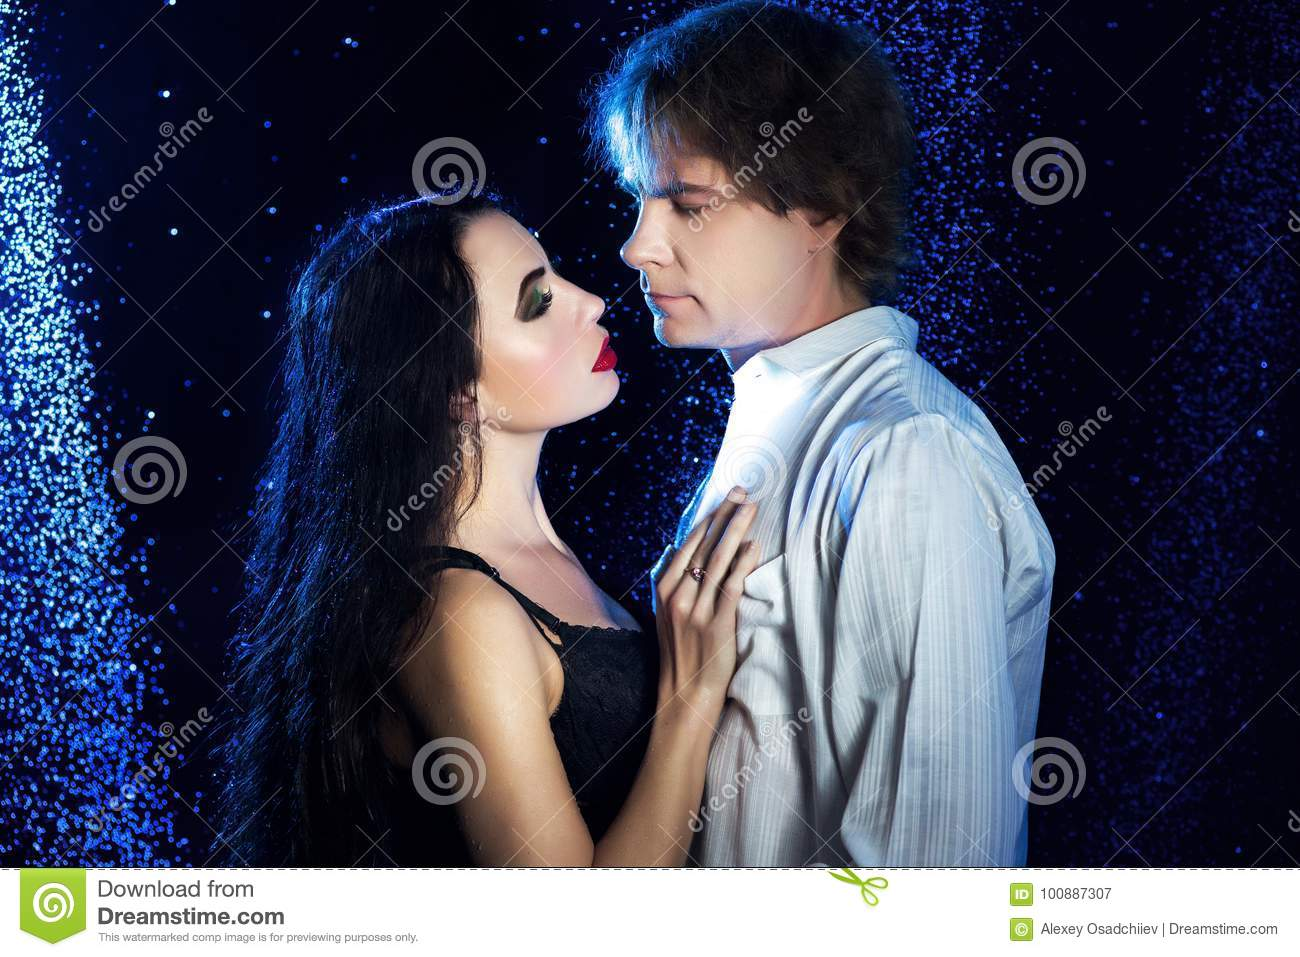 Lovers In The Shower Black And Blue Aqua Studio Couple Men Women Hug Love Sexy Beautiful Lady With Long Curly Hair